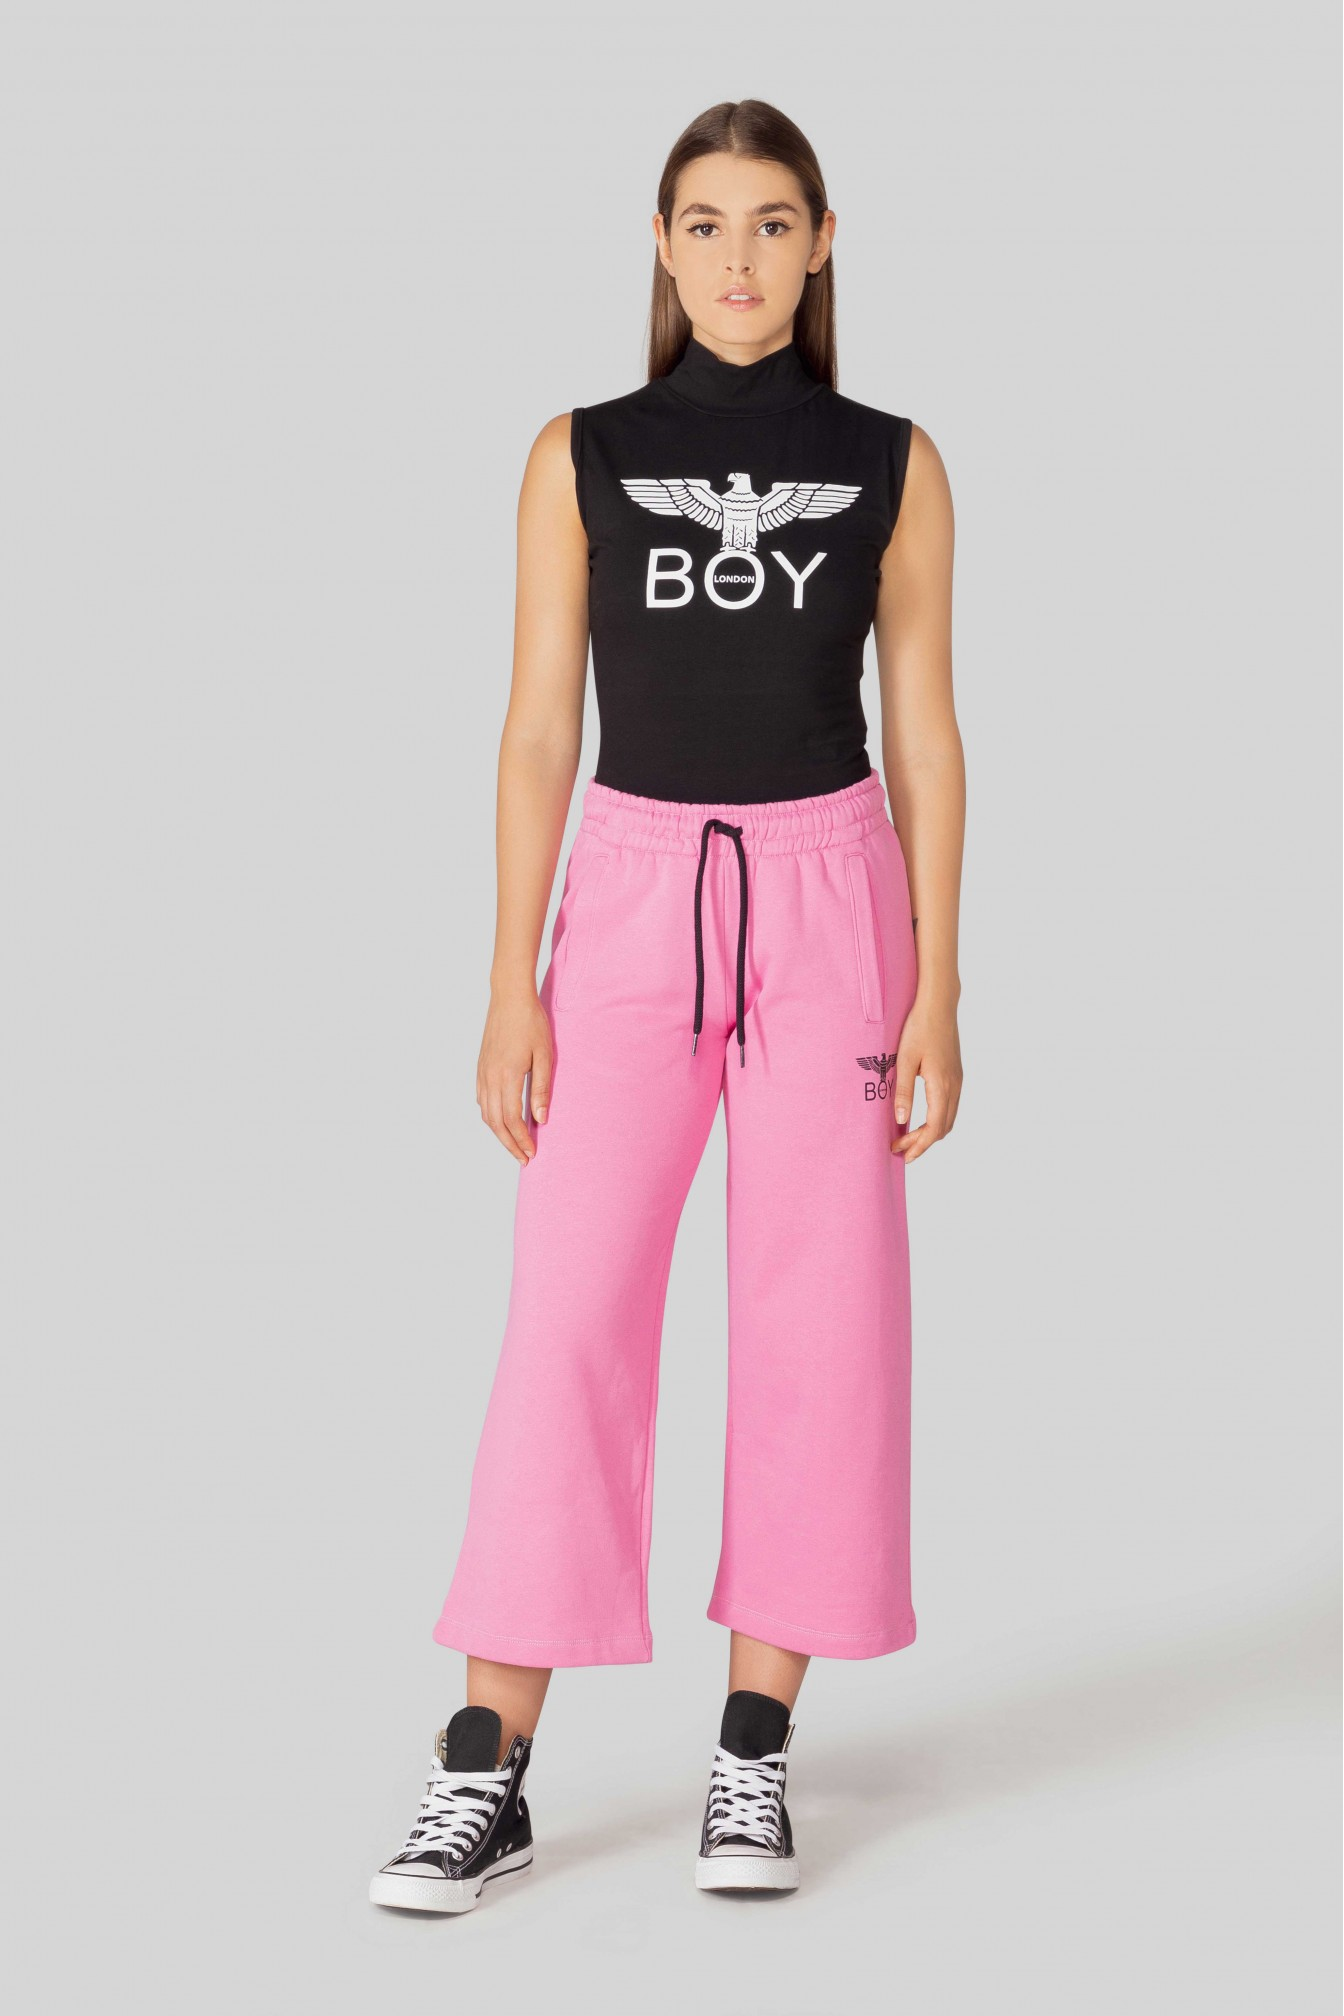 BODY - BLD2616 - BOY LONDON